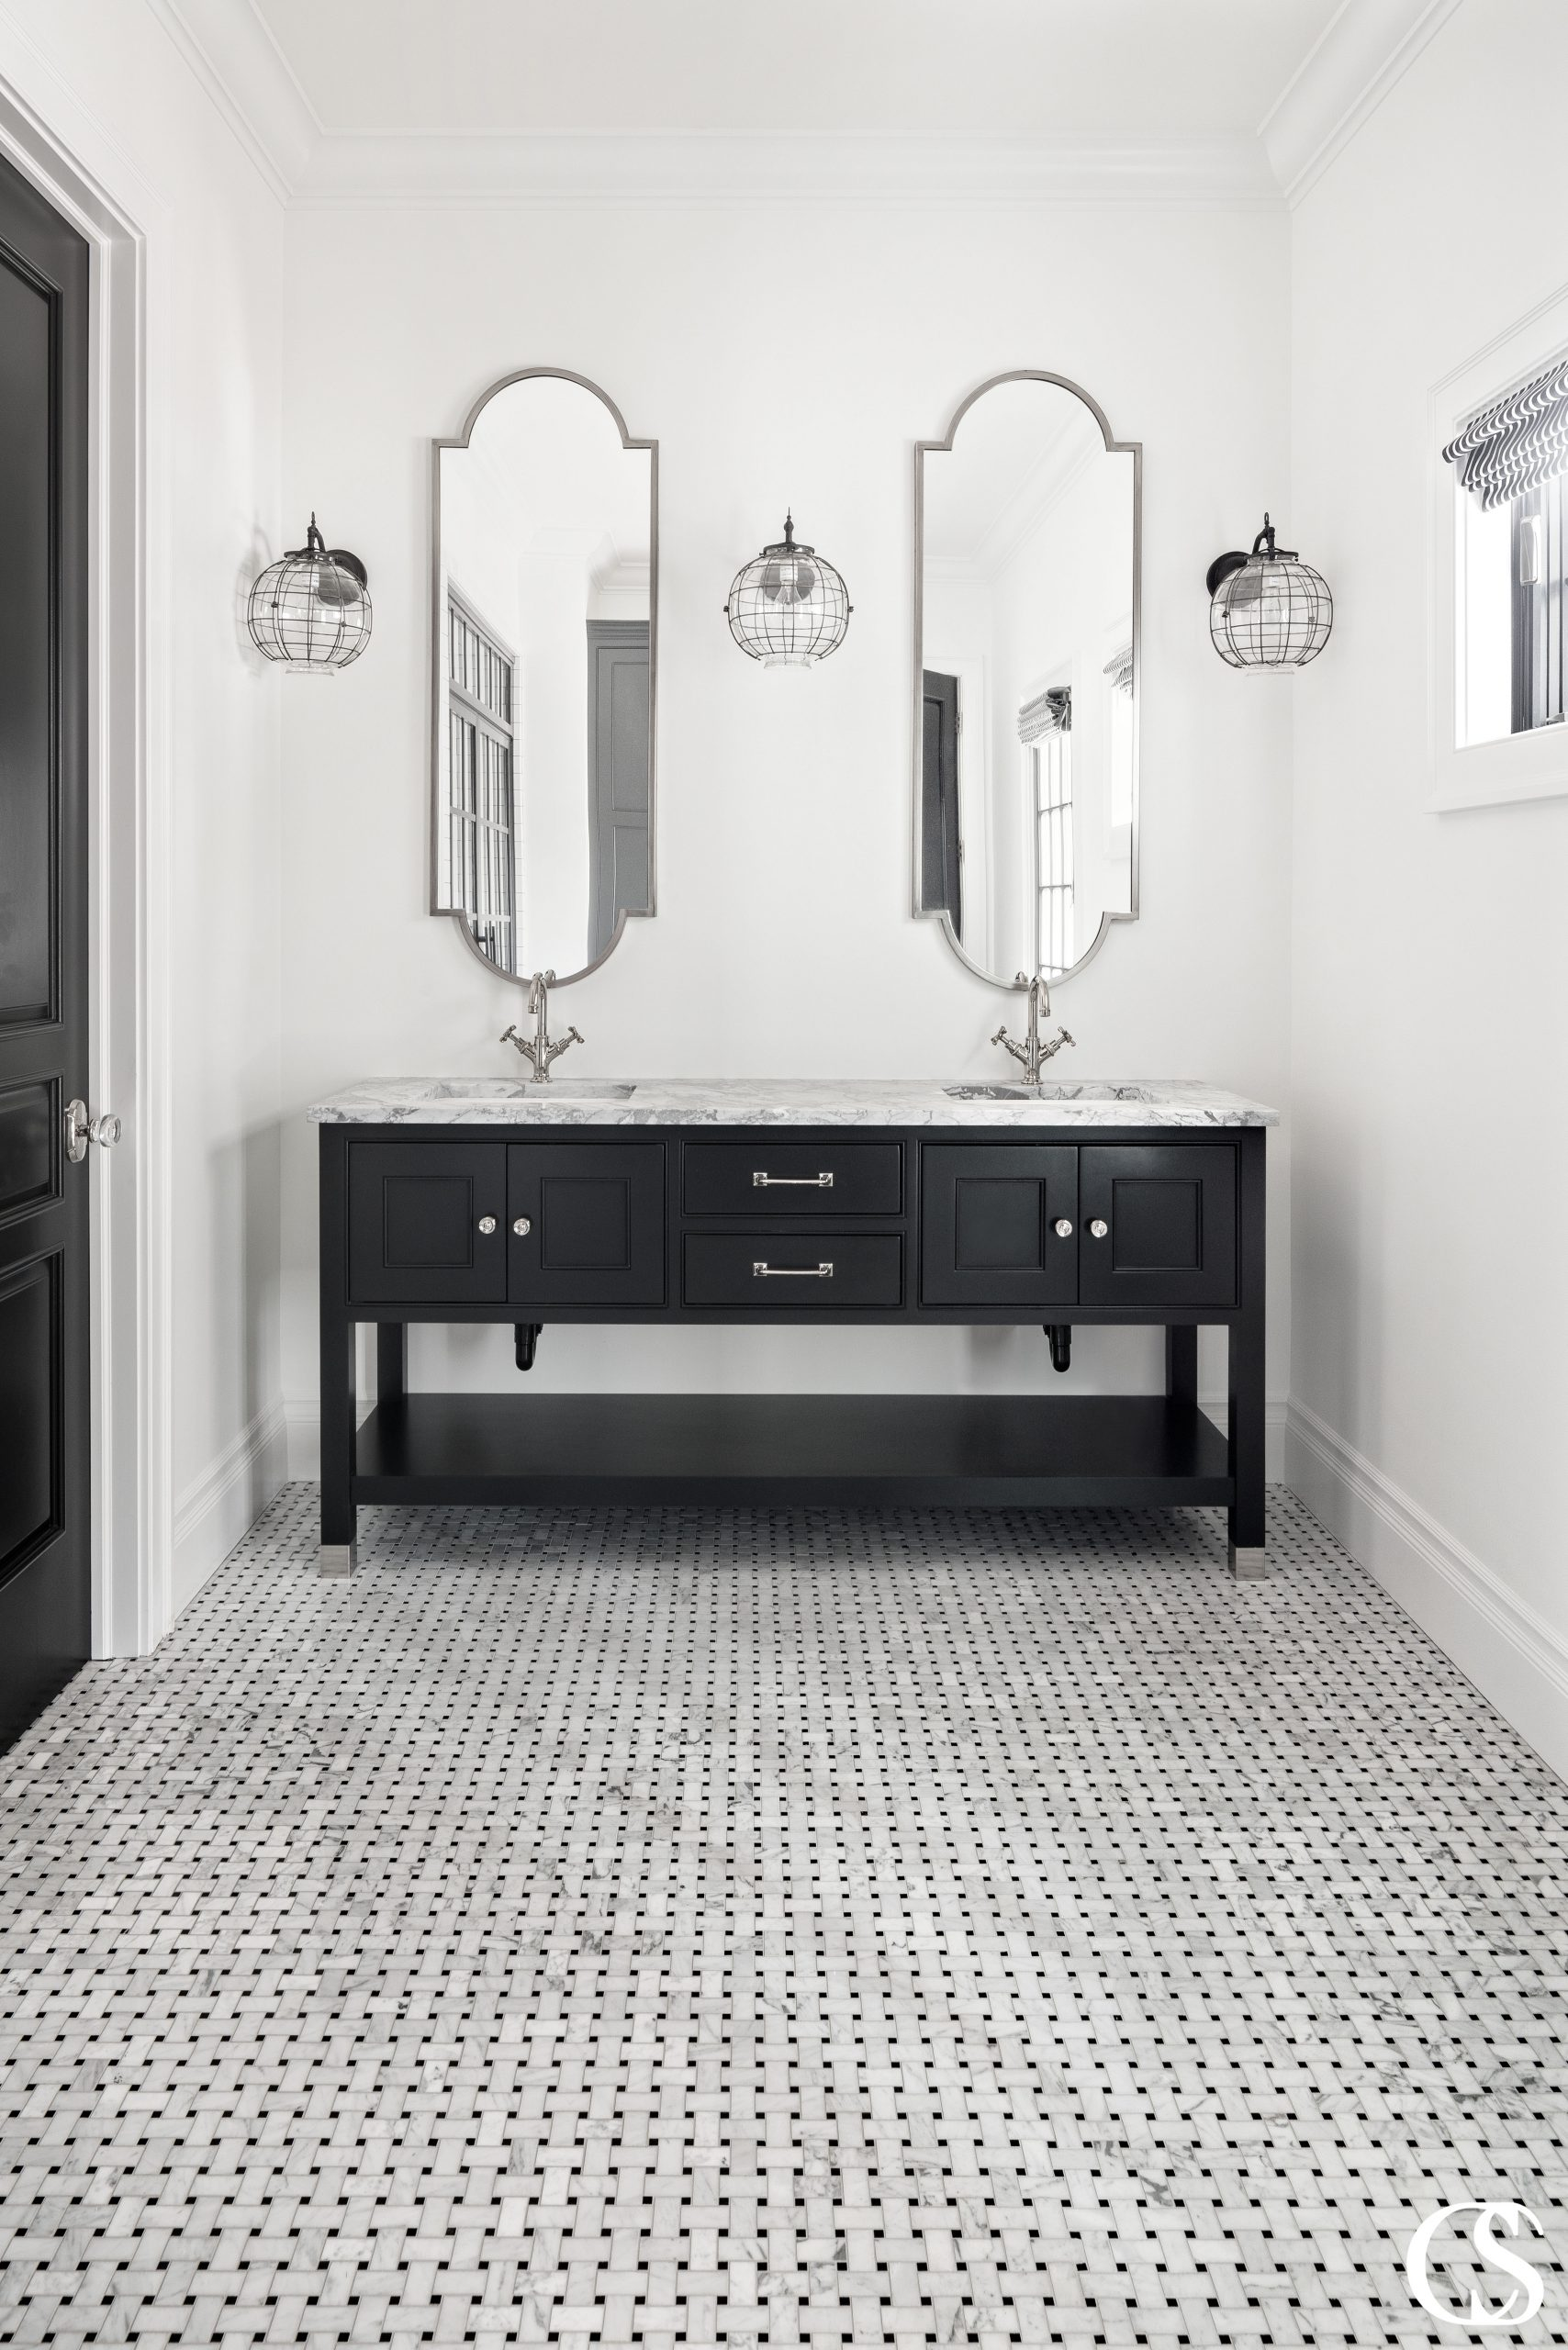 Don't sell your guest bathroom short! Even smaller spaces can accommodate custom two sink bathroom designs.